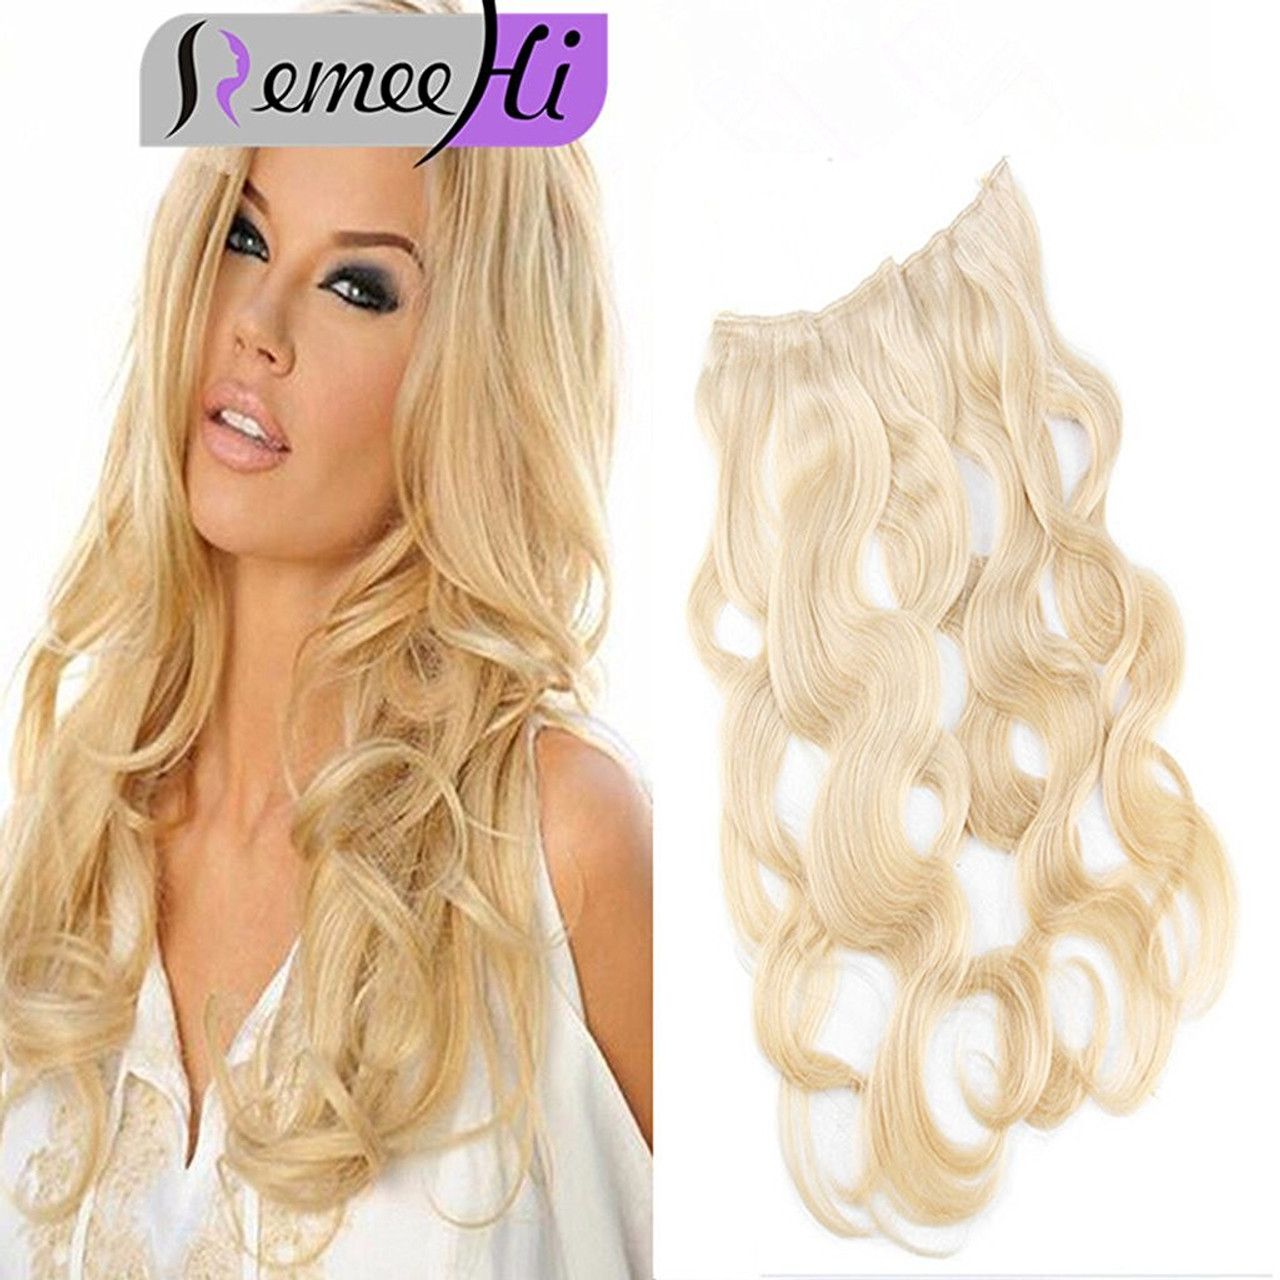 Remeehi 16 30 Hidden Halo Body Wave Invisible Wire One Piece